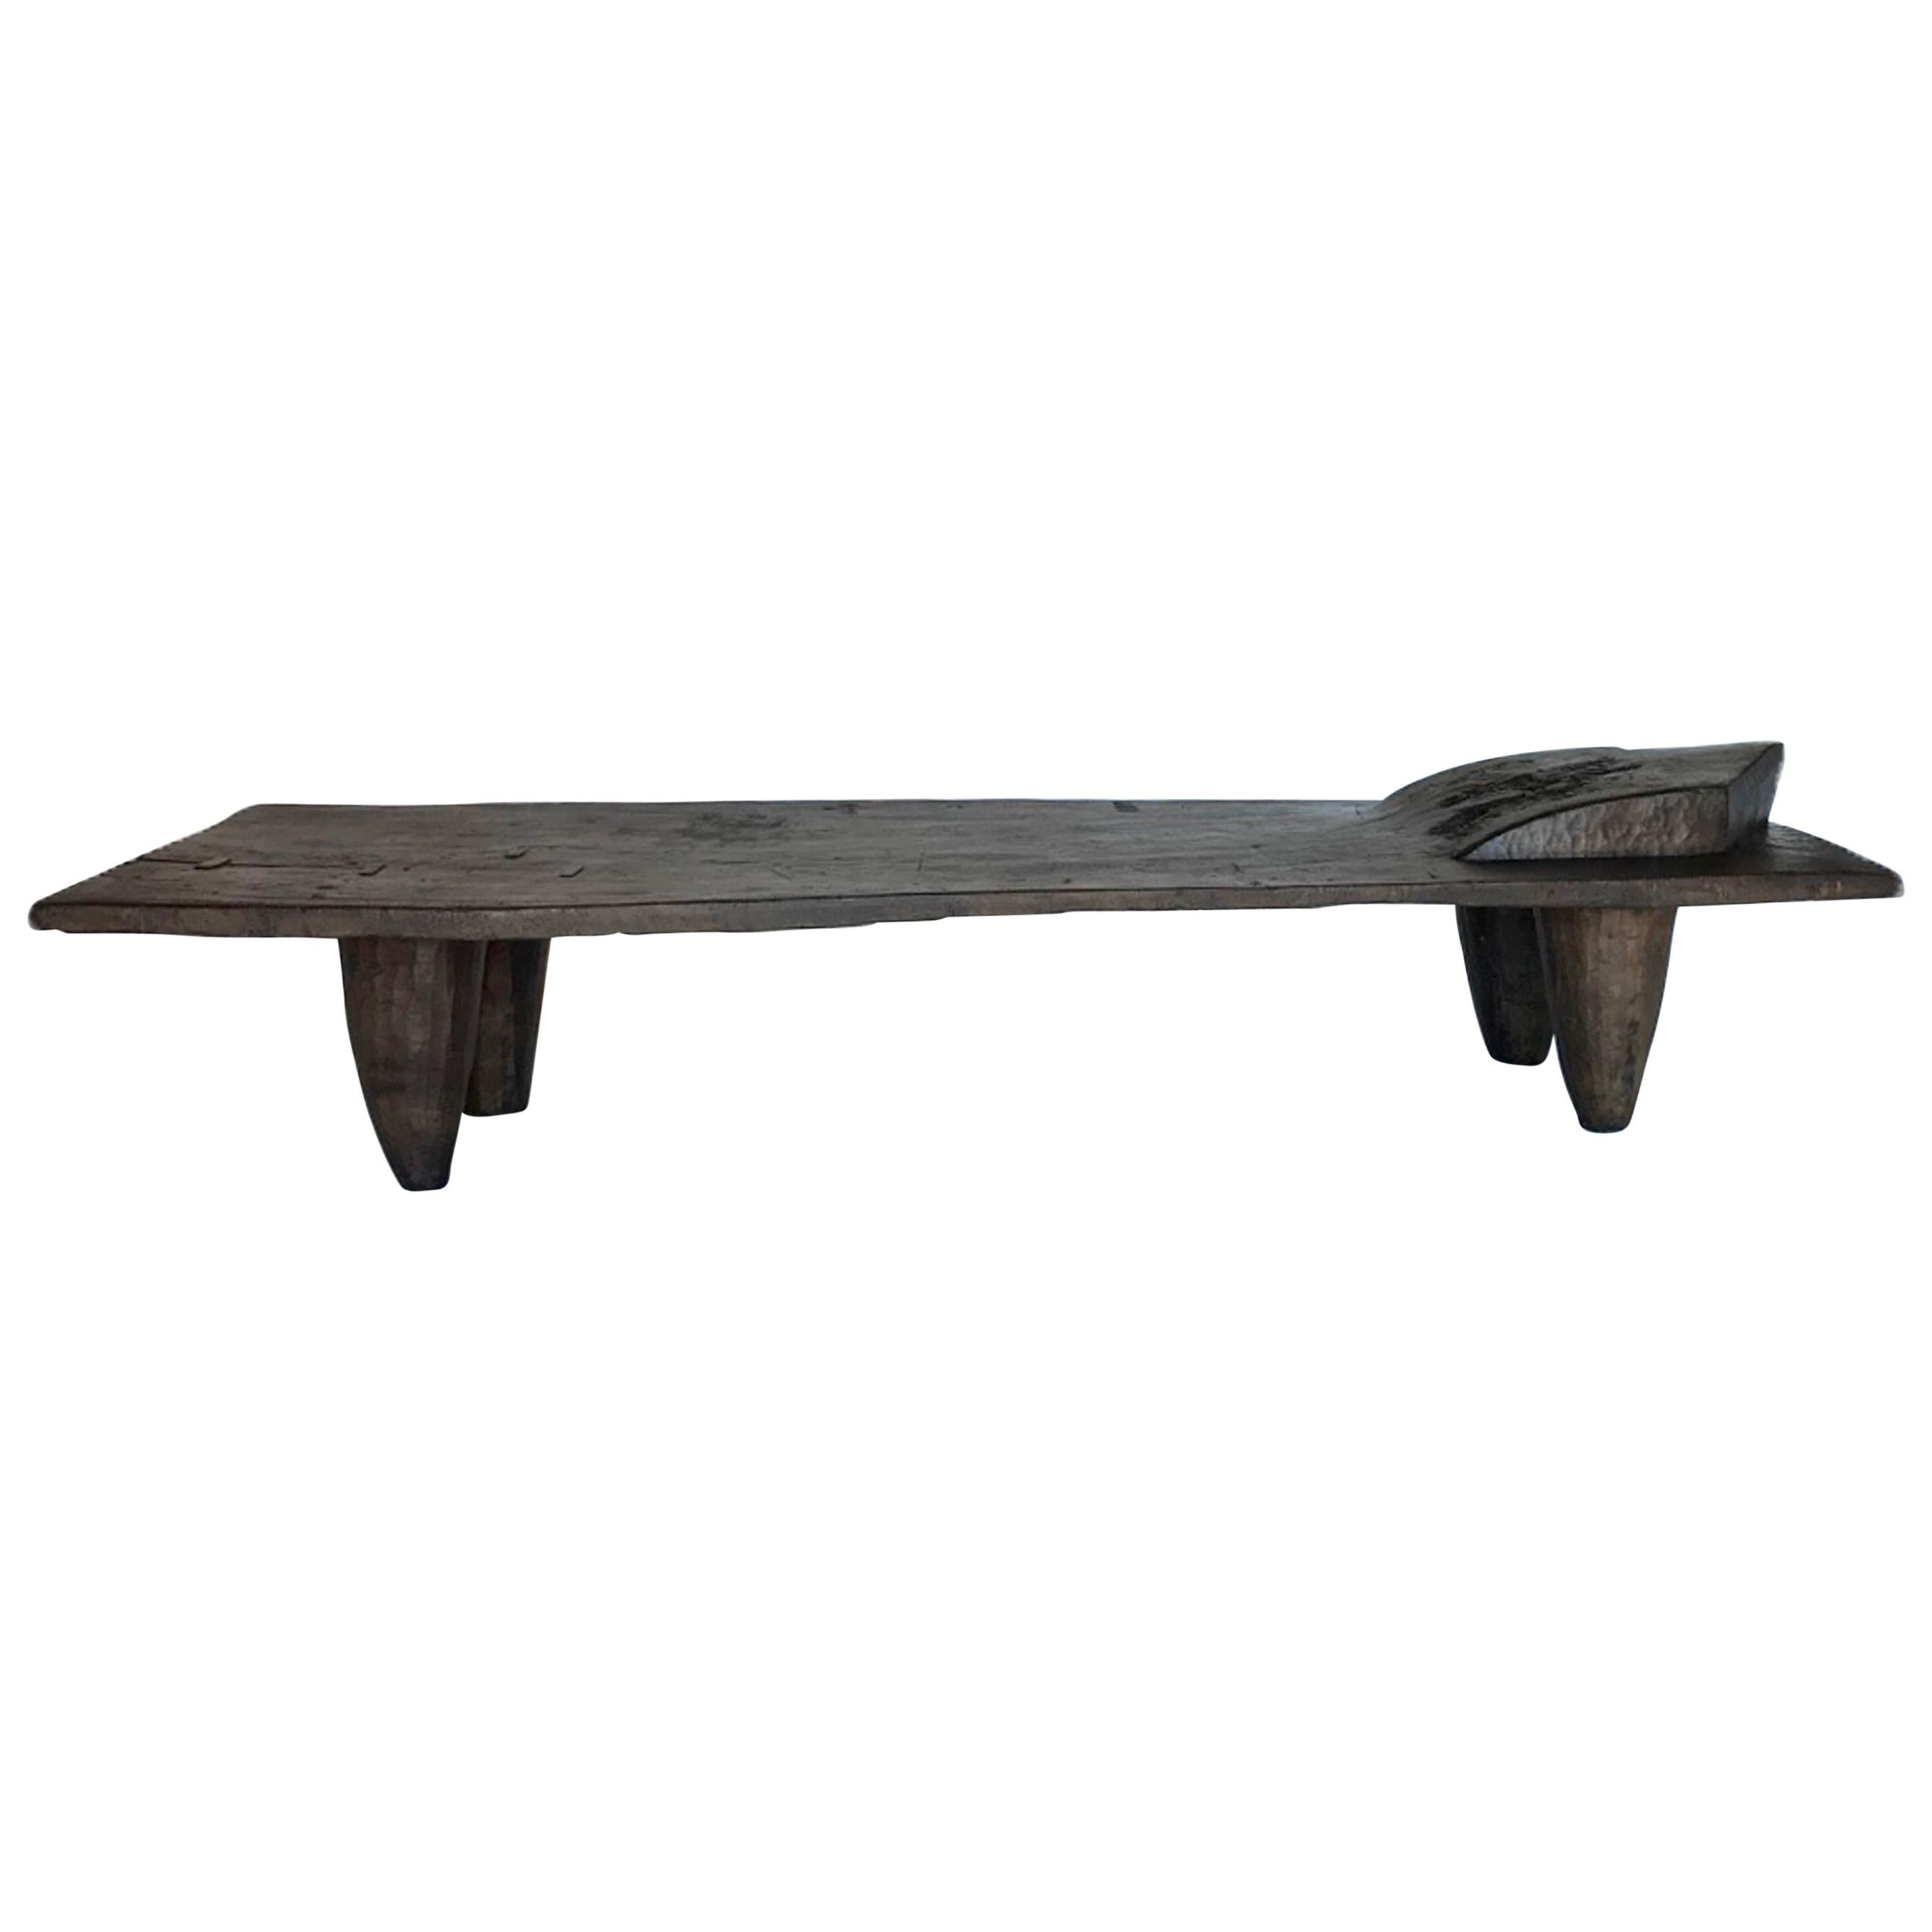 Large Scale Old Senufo Tribe Bed/Coffee Table/Bench